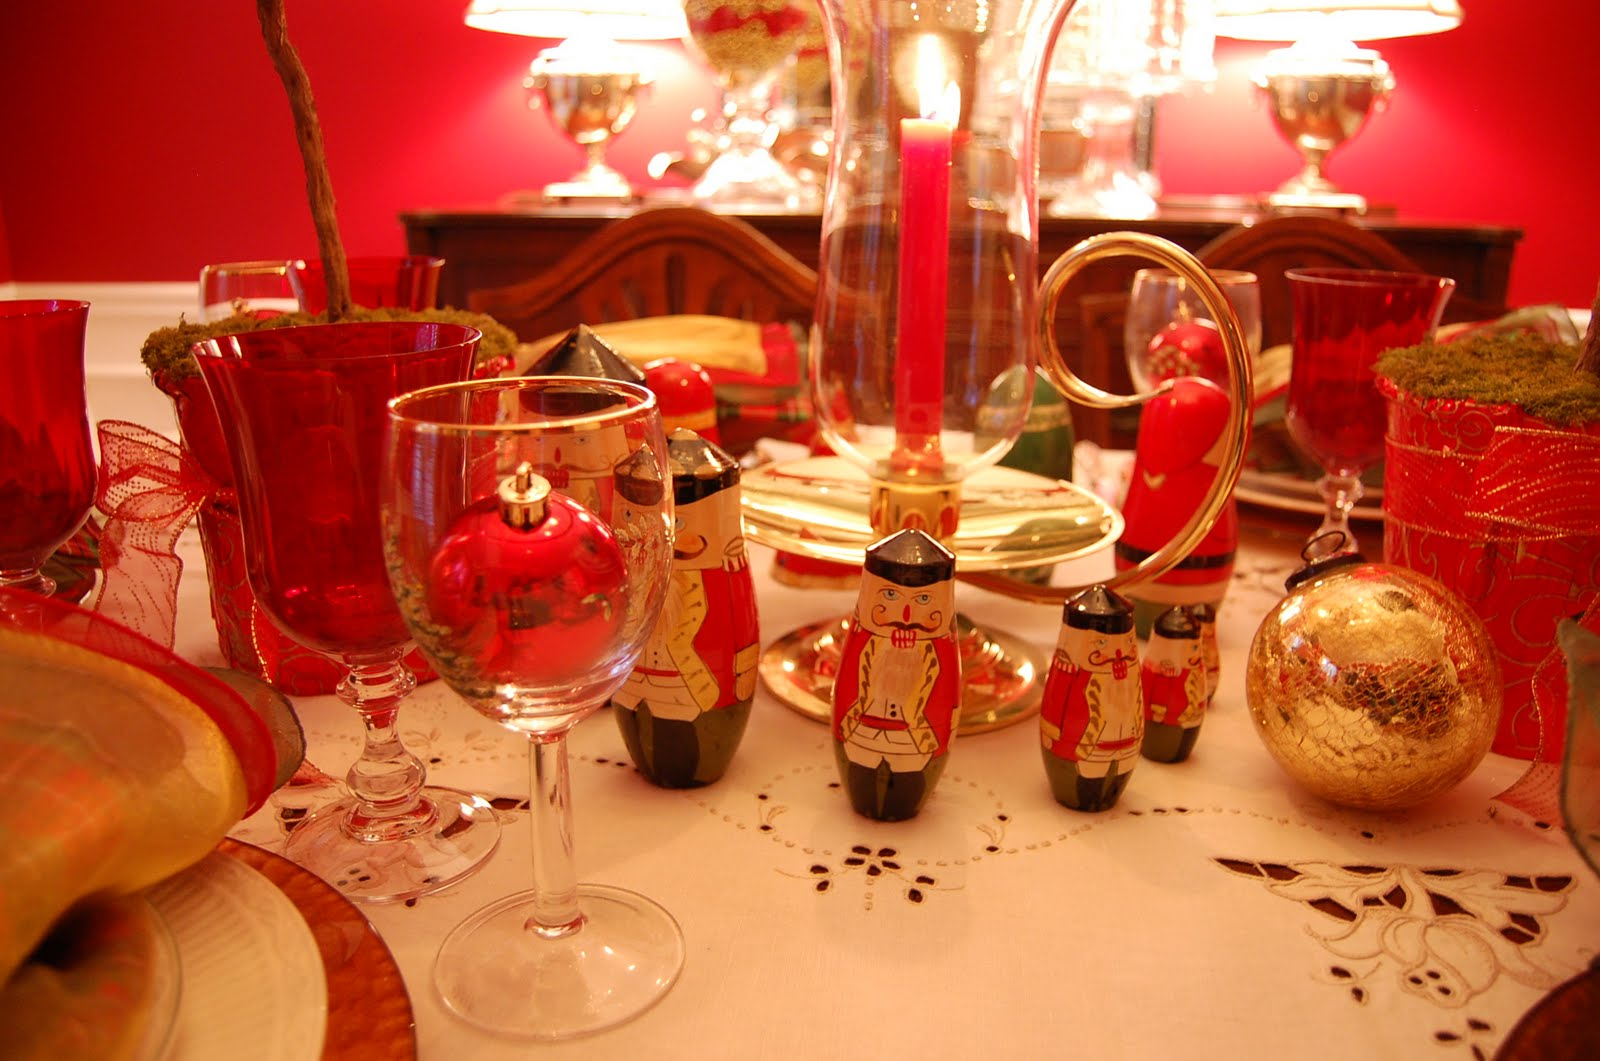 Russian table setting - Christmas Table Setting Tablescape With Topiary Centerpiece